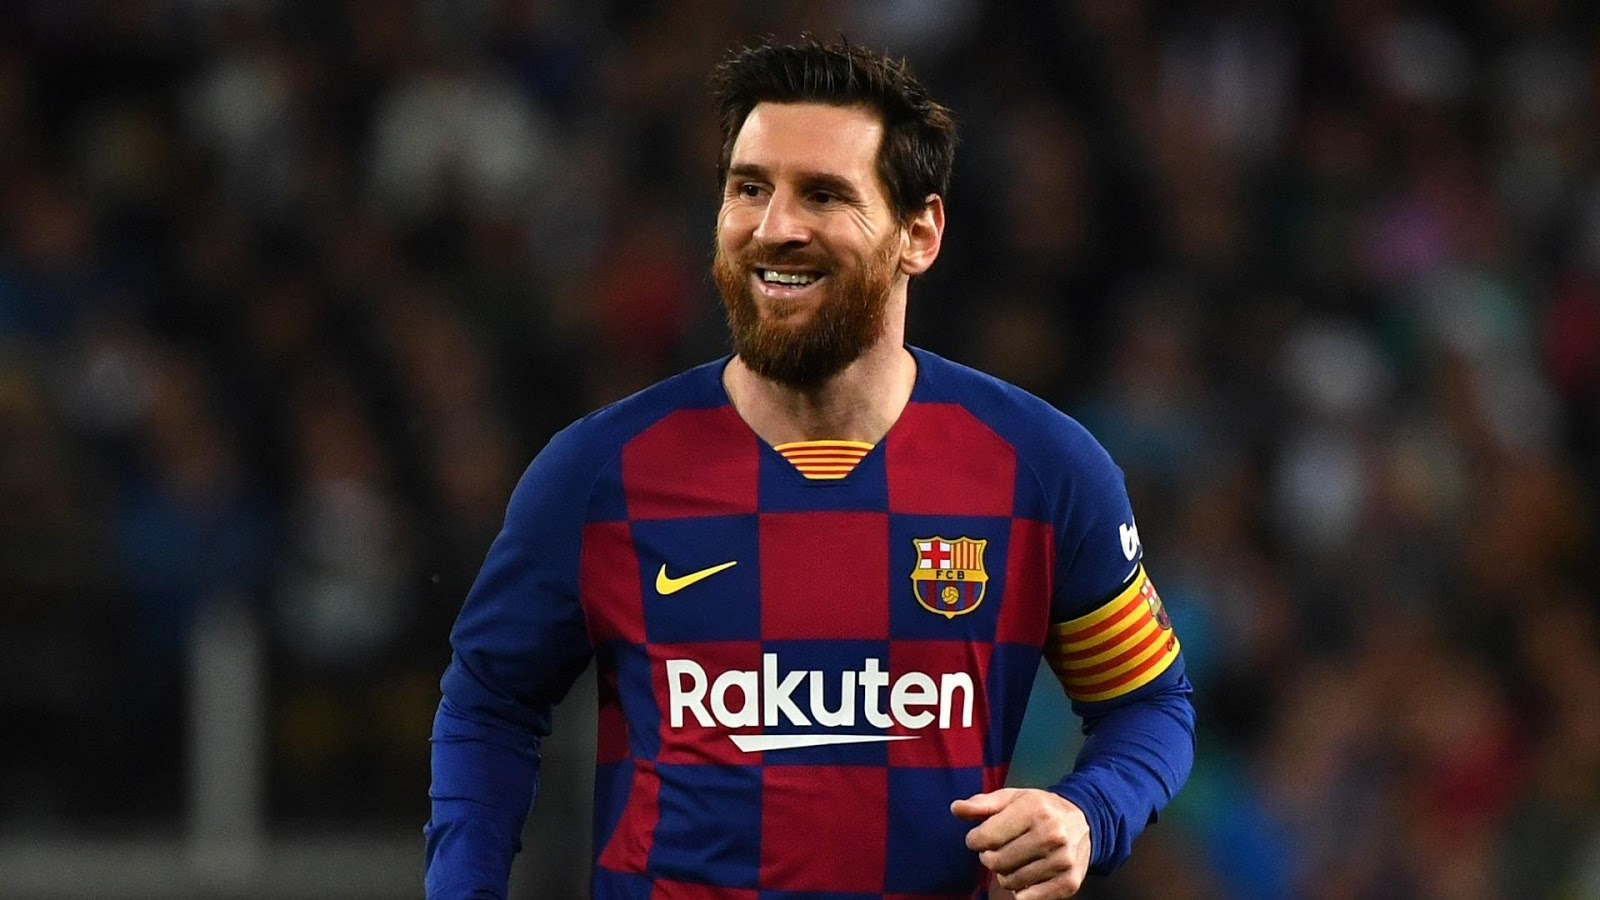 Messi has a low centre of gravity so he is super agile and can change direction super fast/ Ph: goal.com